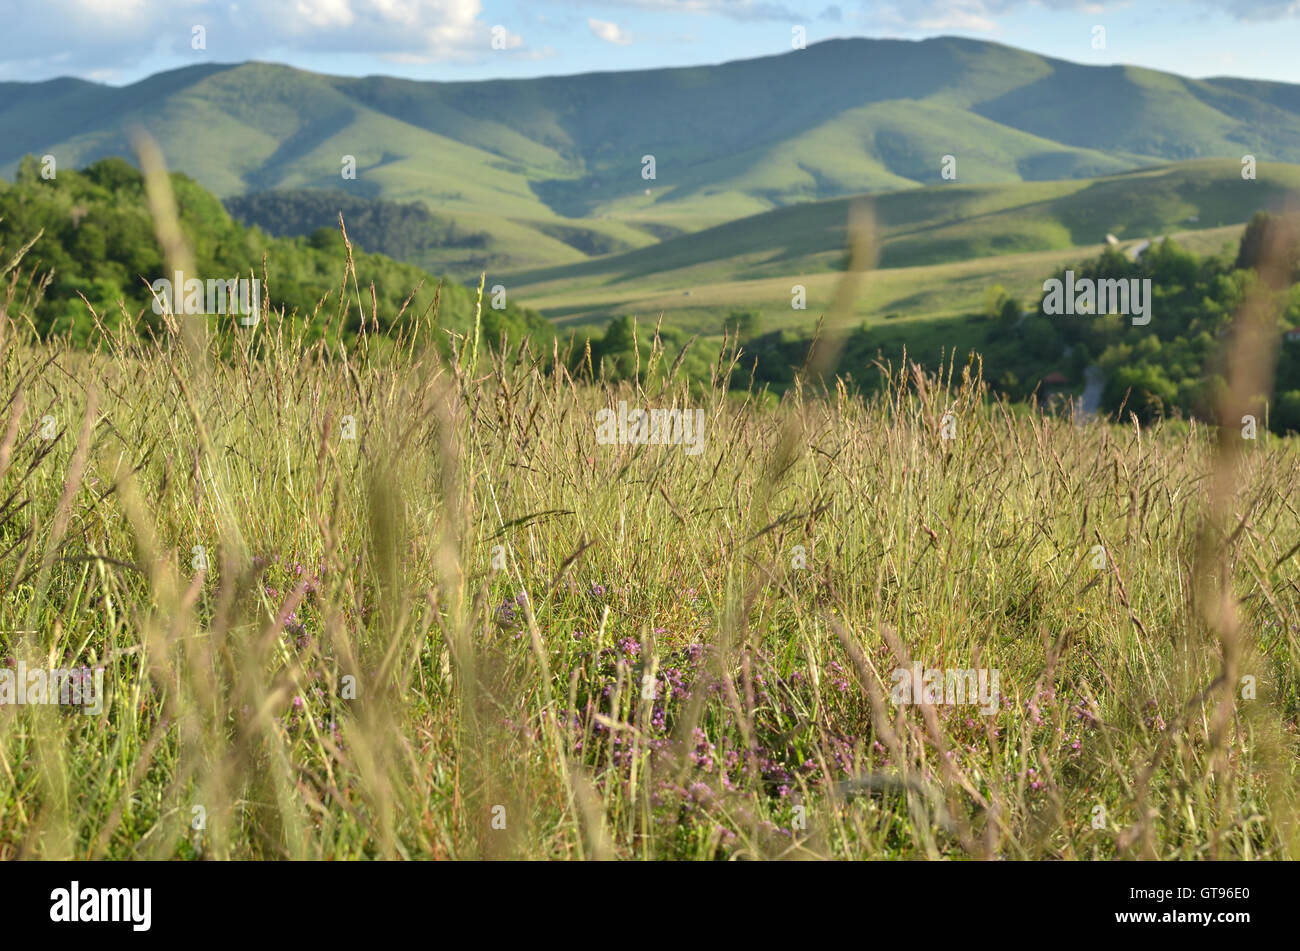 Landscape of Zlatibor Mountain viewed partly through spring grass - Stock Image